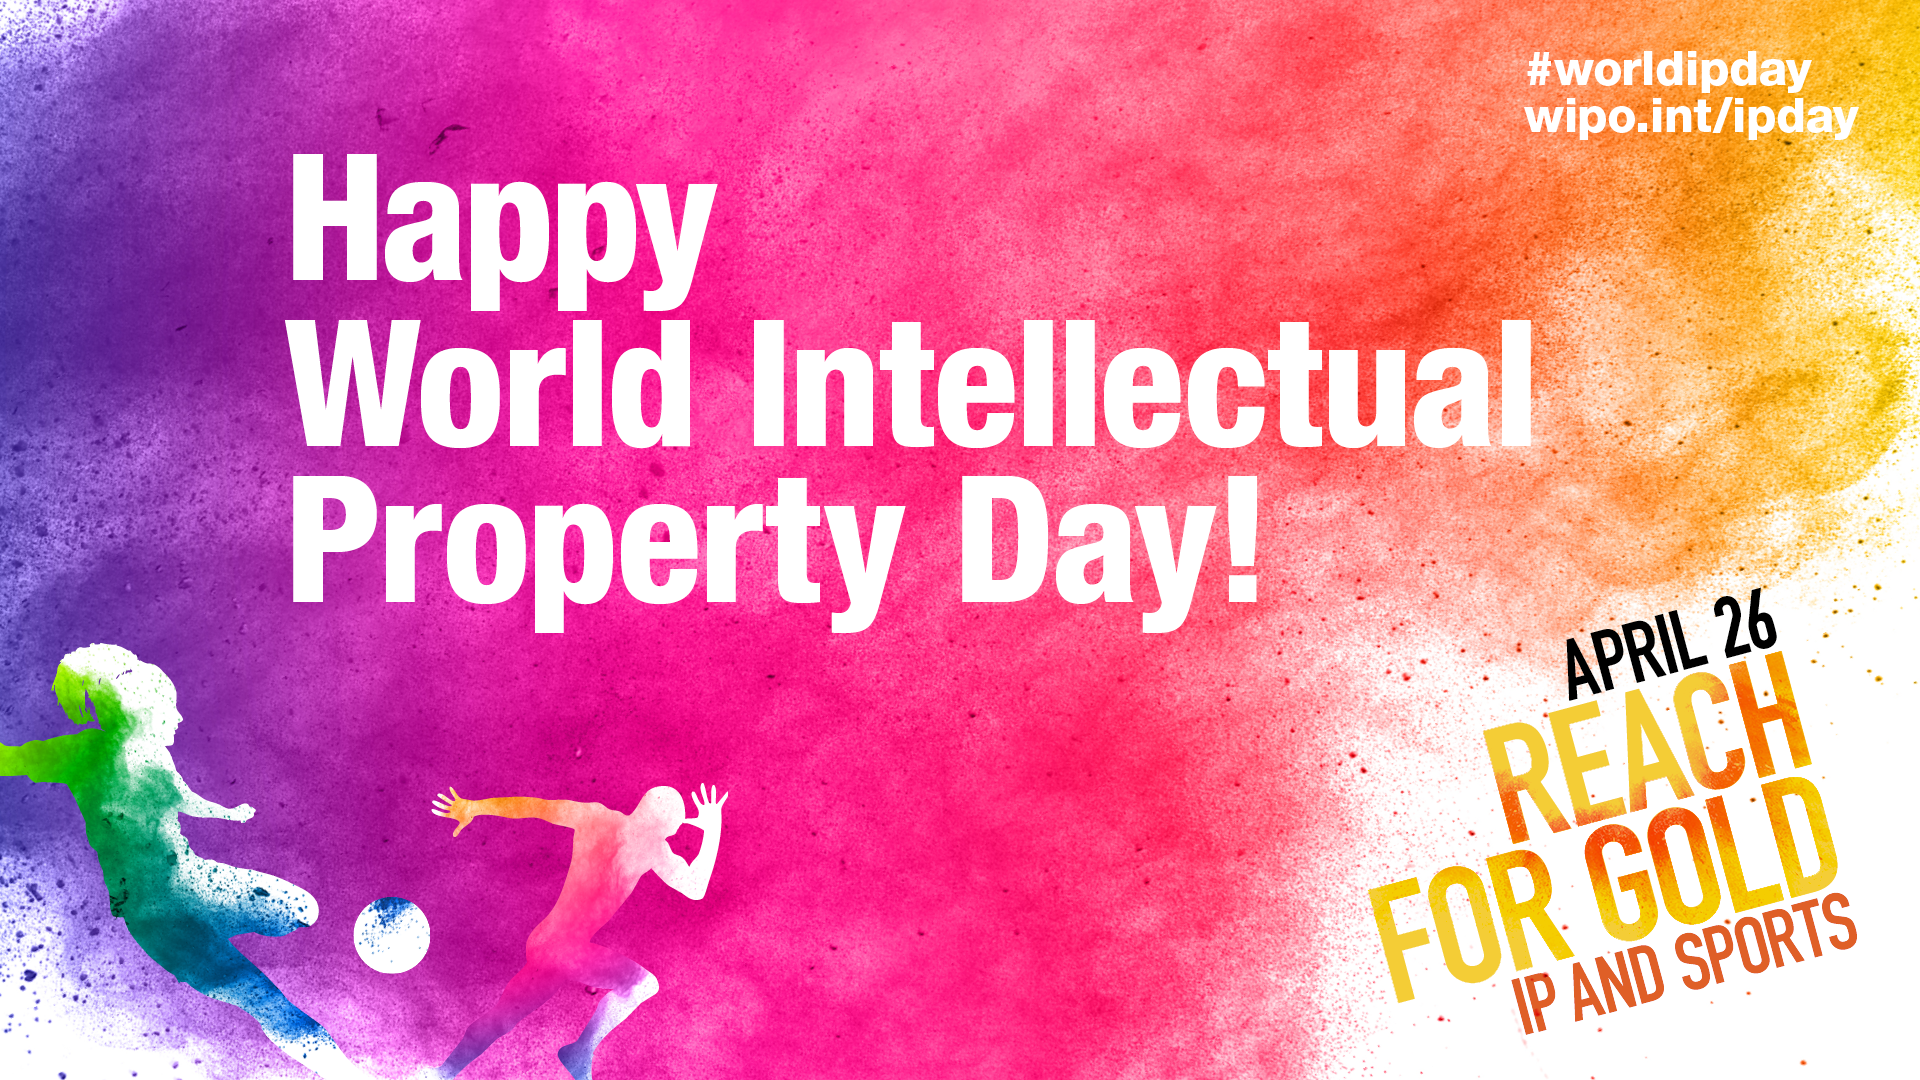 banner wipo world ip day